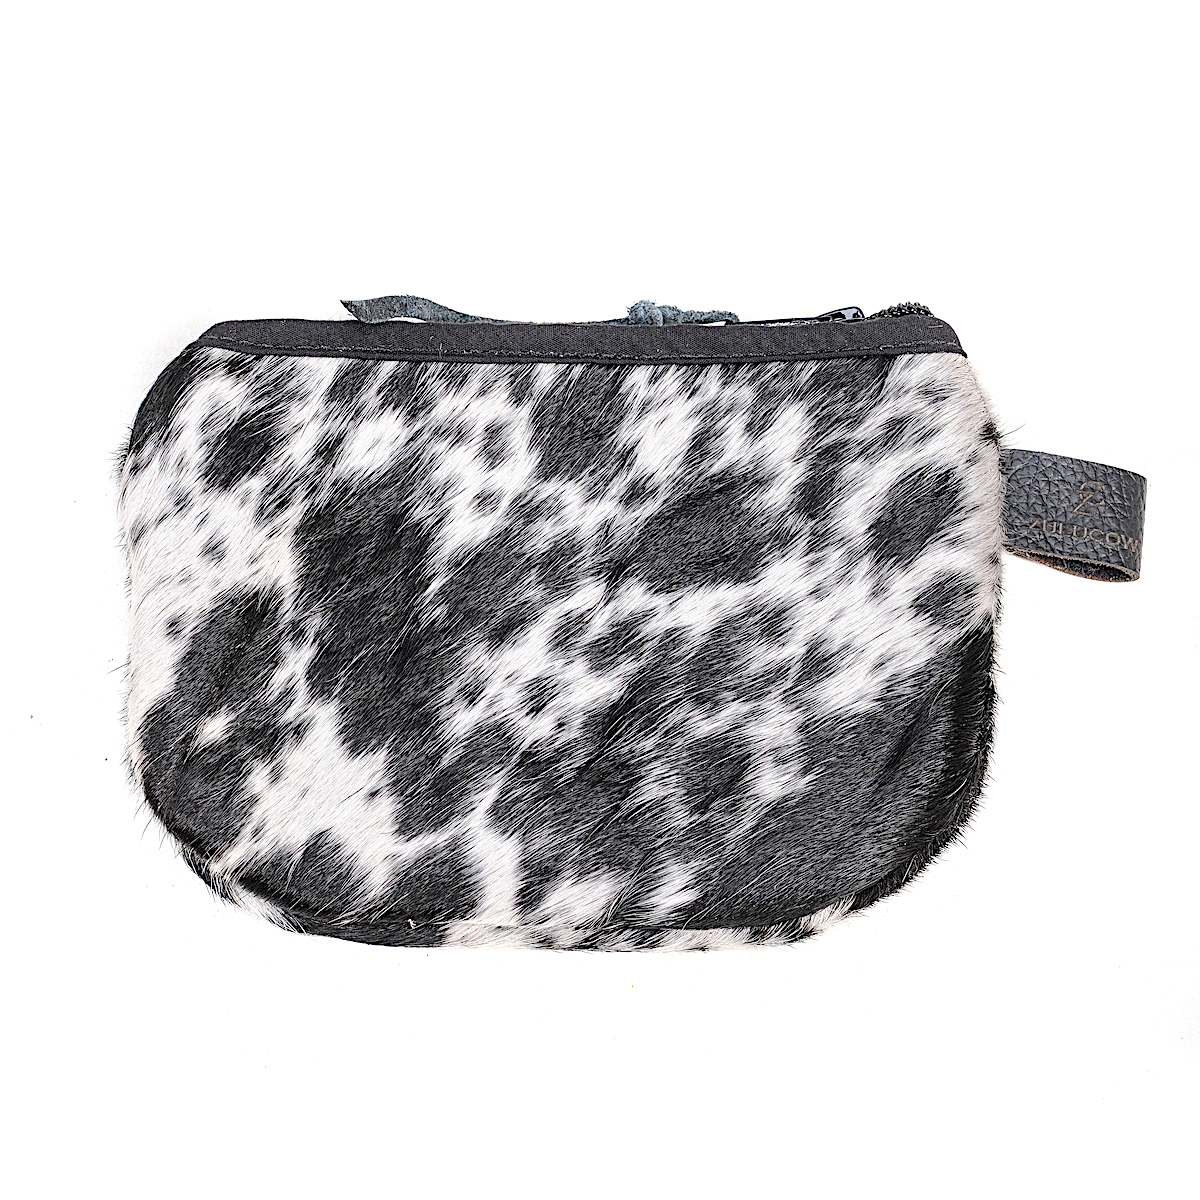 cowhide purse, black and white, accessories, sustainable, ethically-made